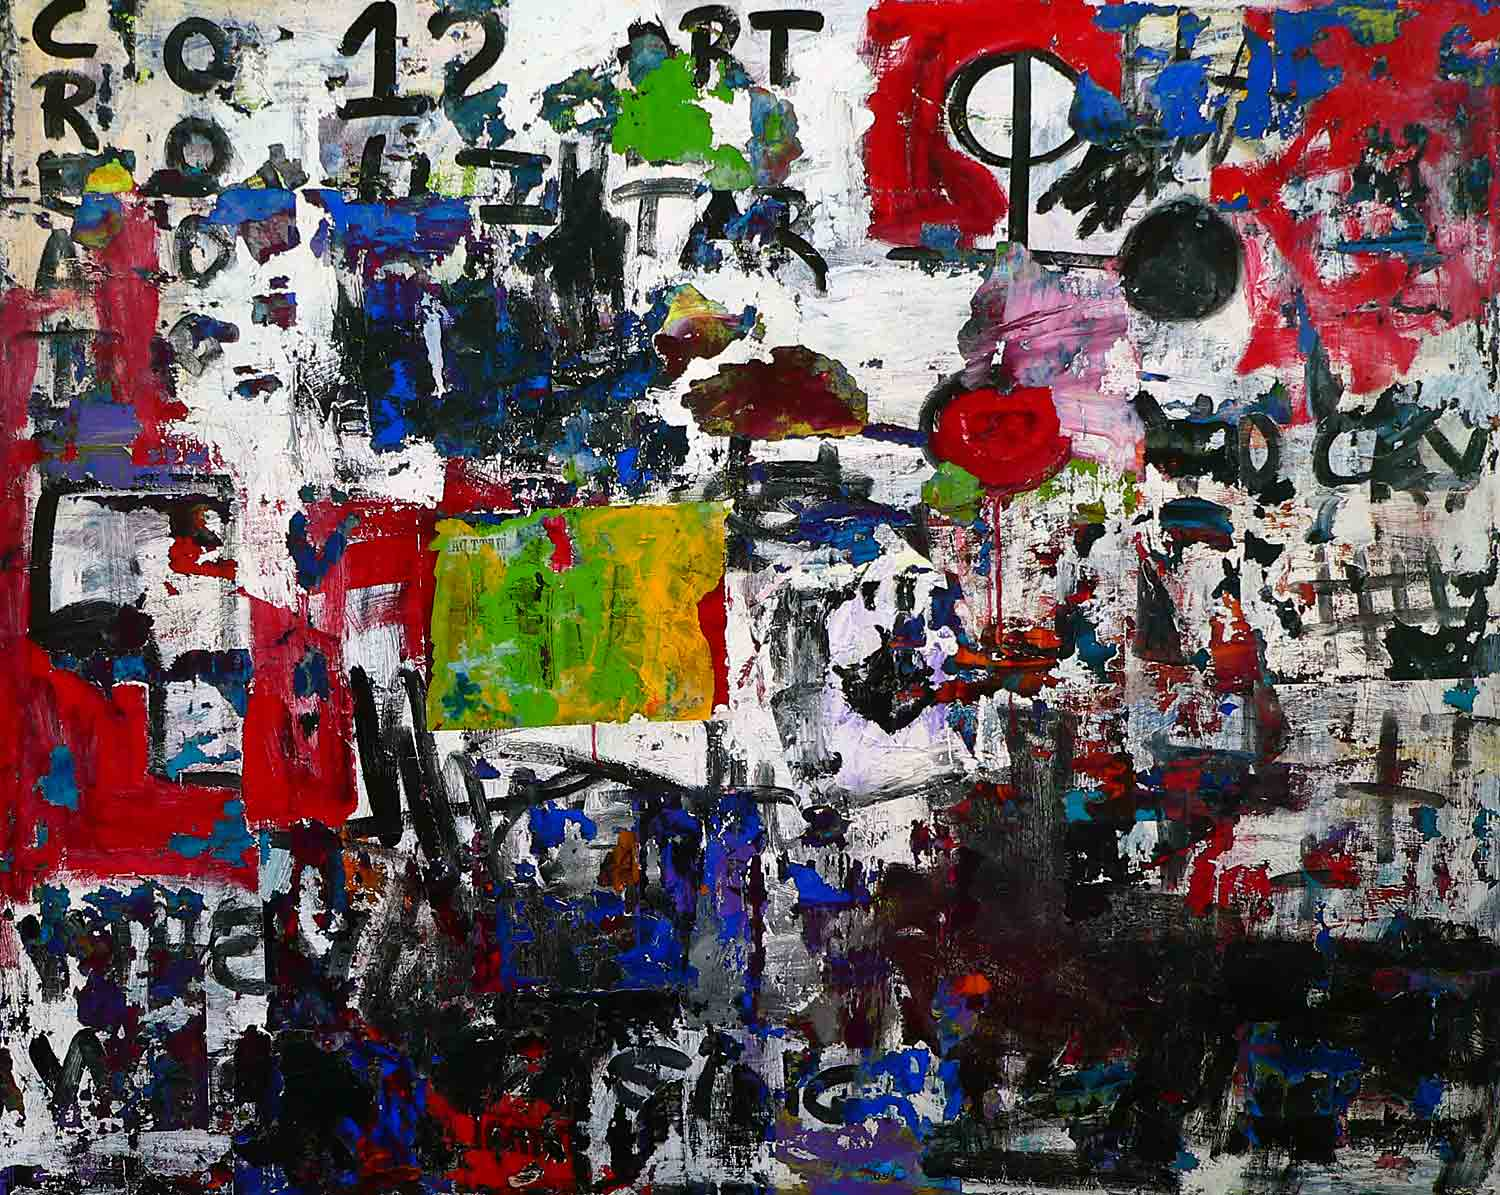 tar - 150 x 210 cm - acrylic and collage on canvas - 2011